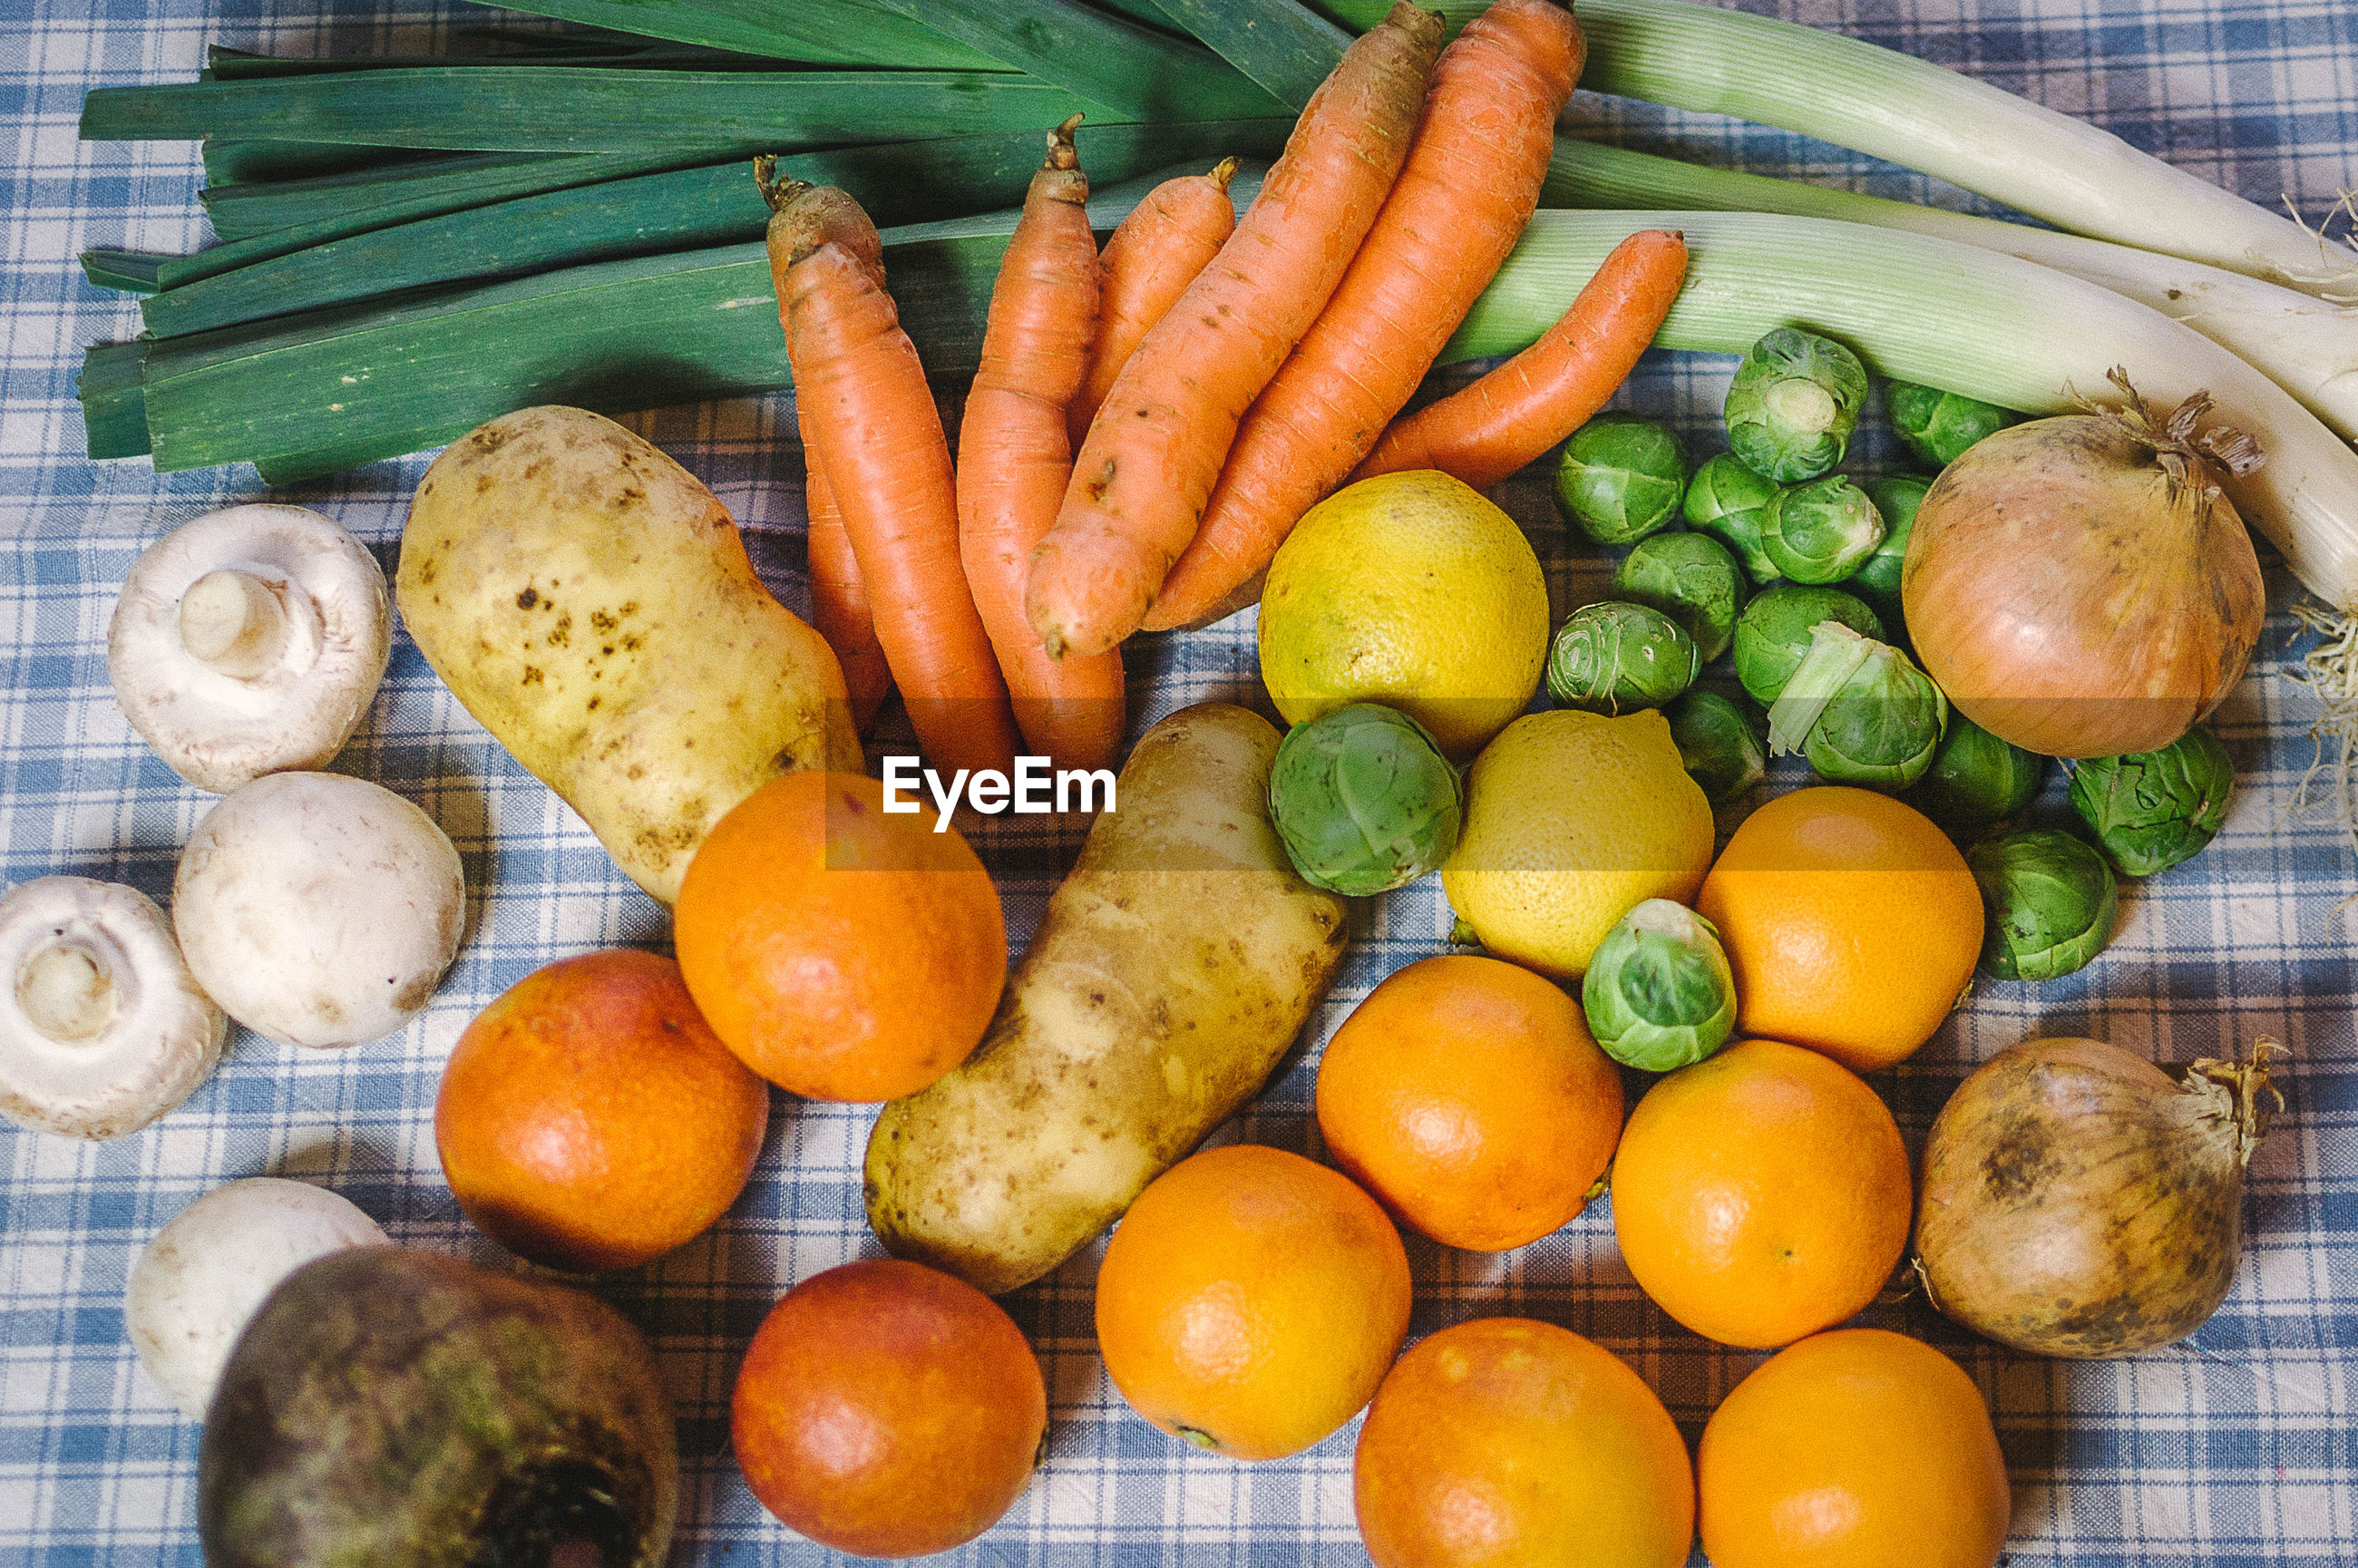 Close-up of vegetables and fruits on table